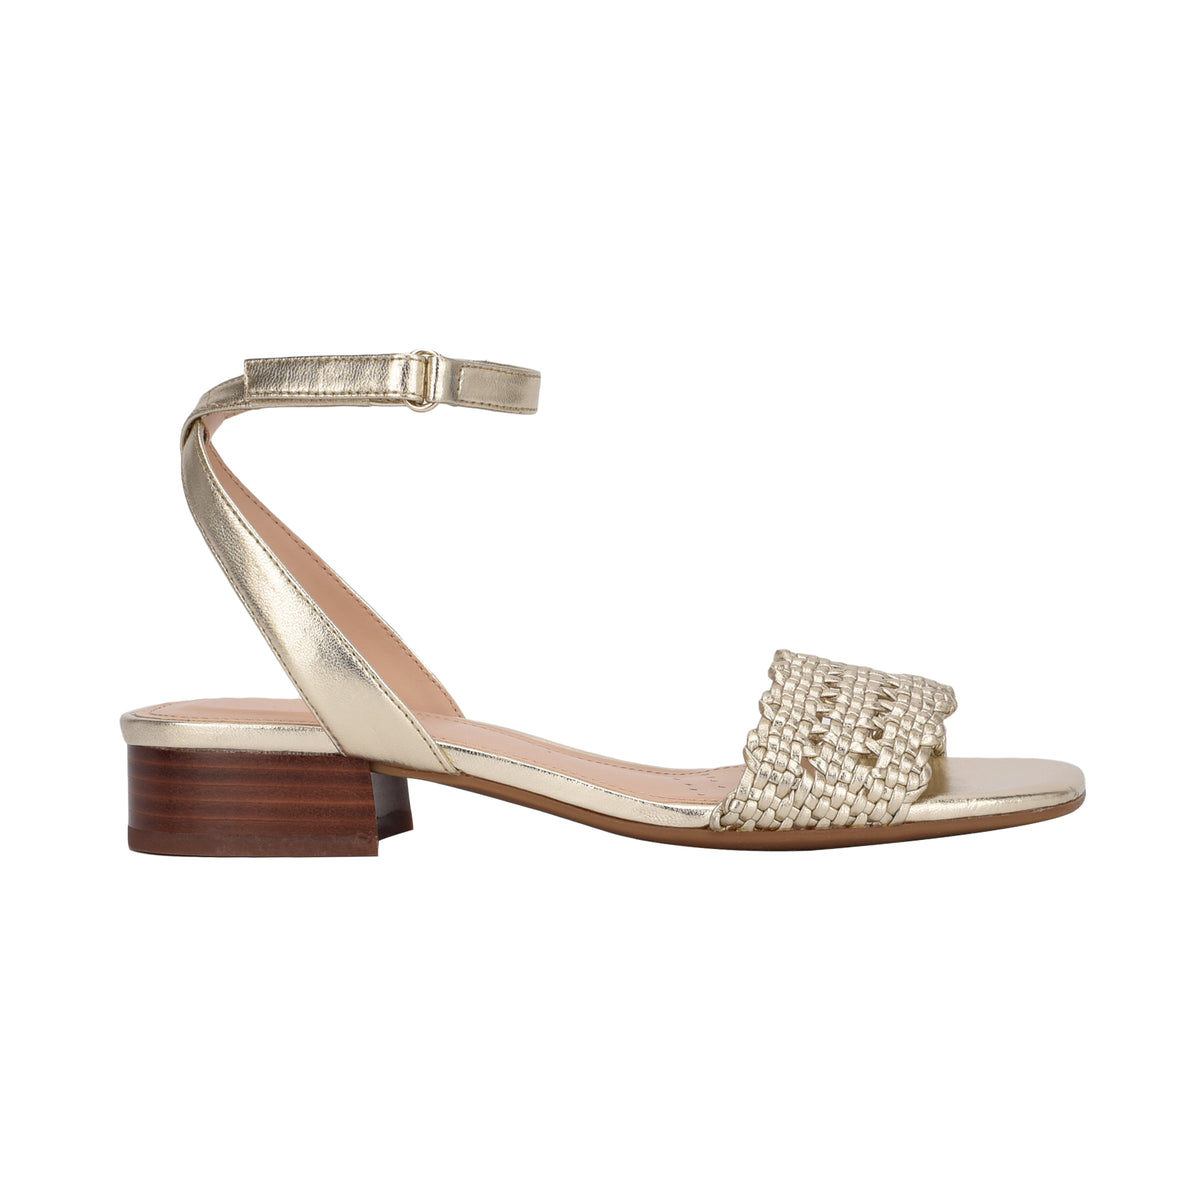 ingrid-ankle-strap-sandals-in-metallic